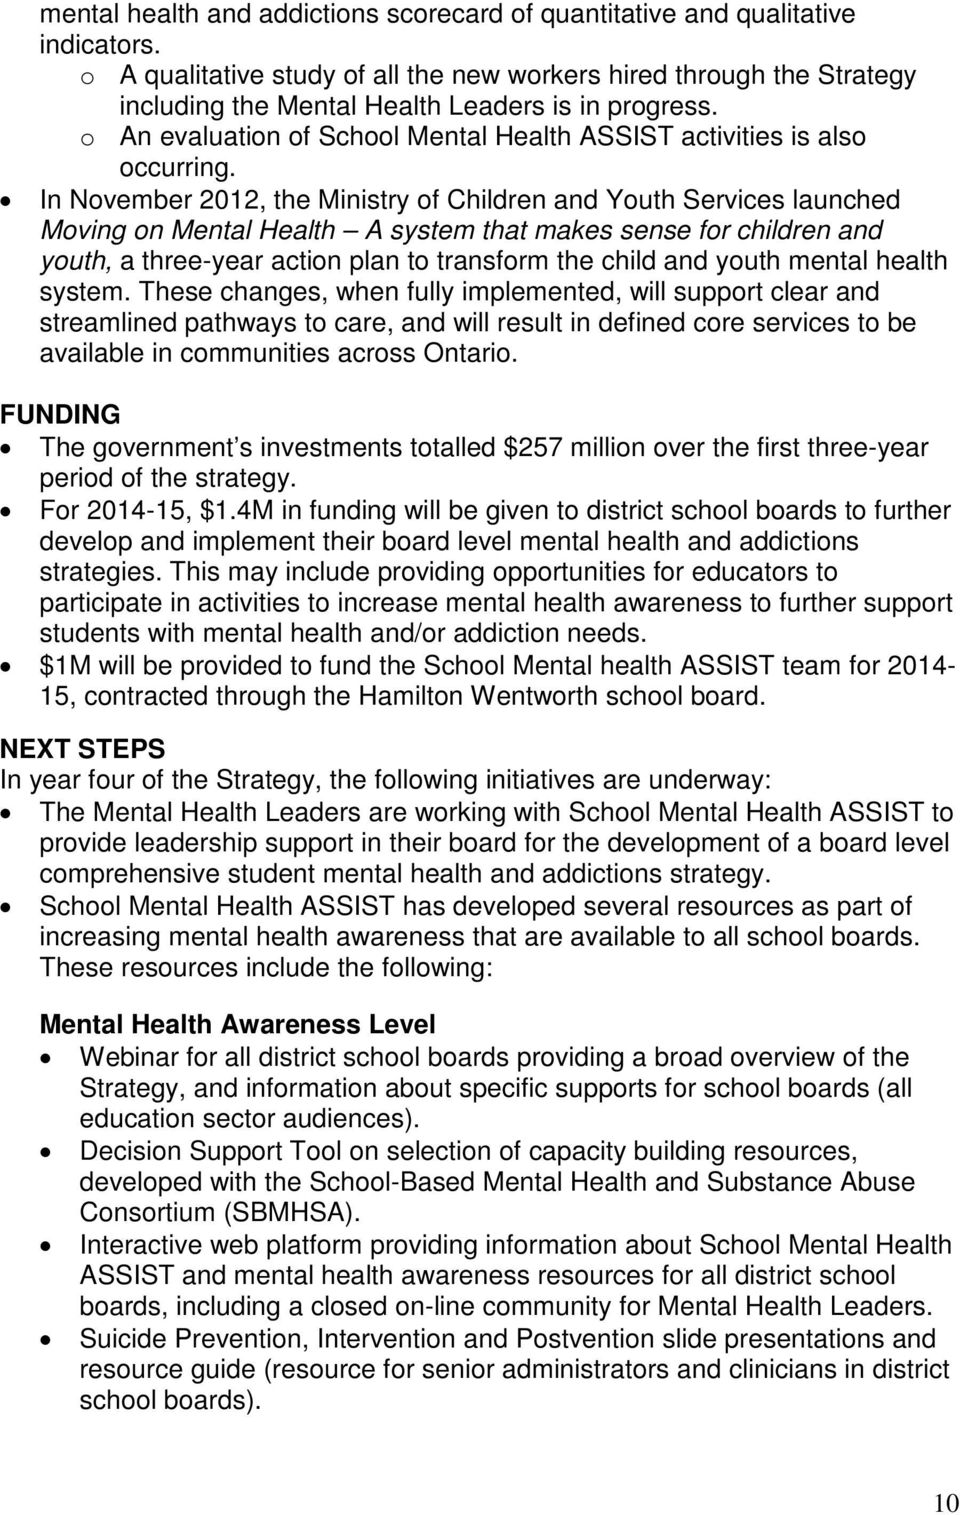 In November 2012, the Ministry of Children and Youth Services launched Moving on Mental Health A system that makes sense for children and youth, a three-year action plan to transform the child and